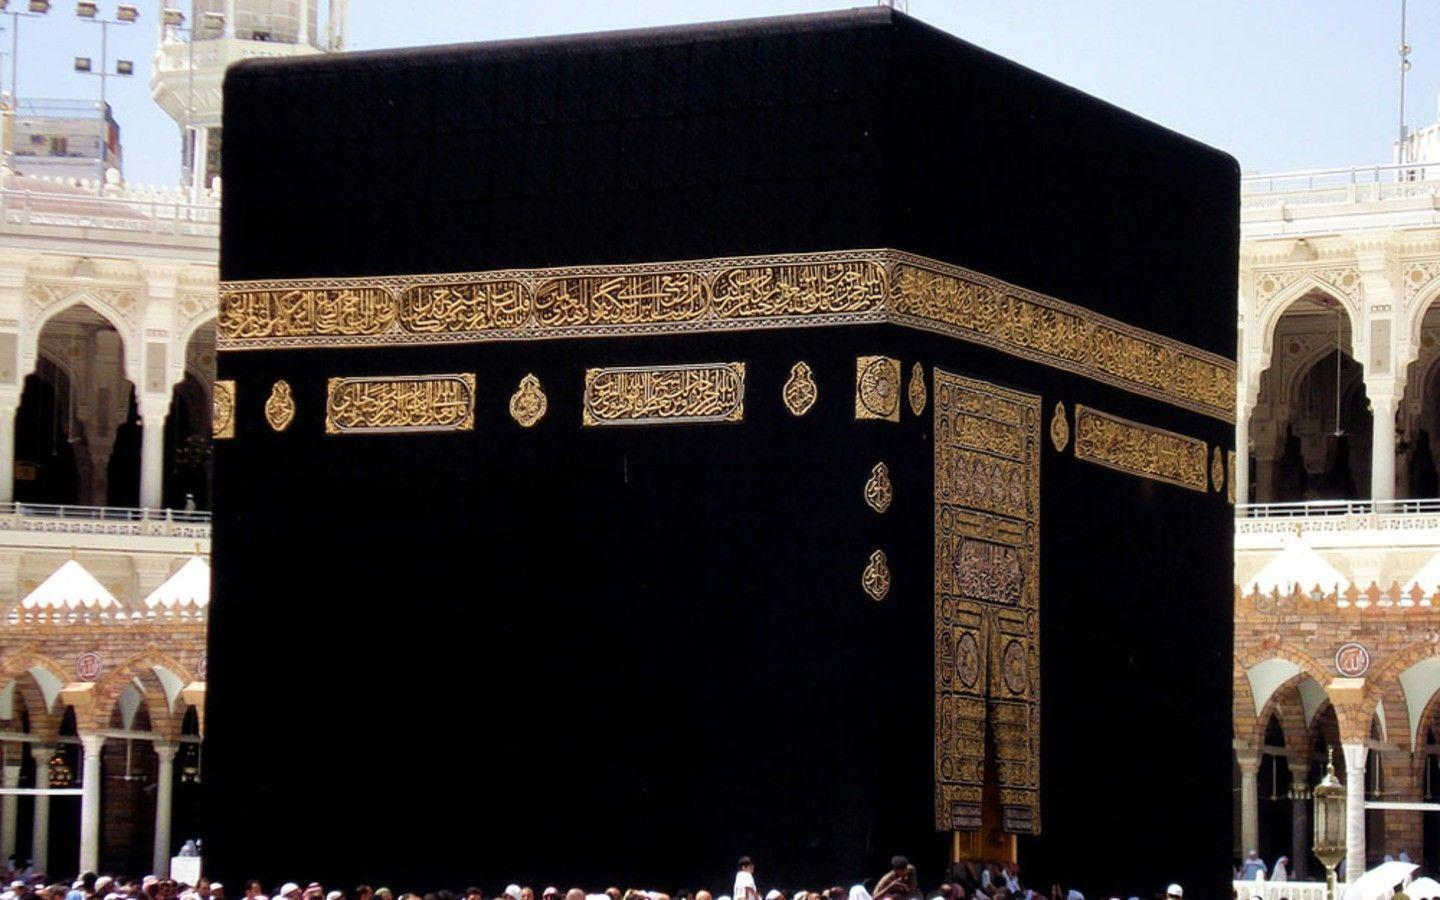 Download Islam Mecca Wallpaper 1440x900 | Wallpoper #396321